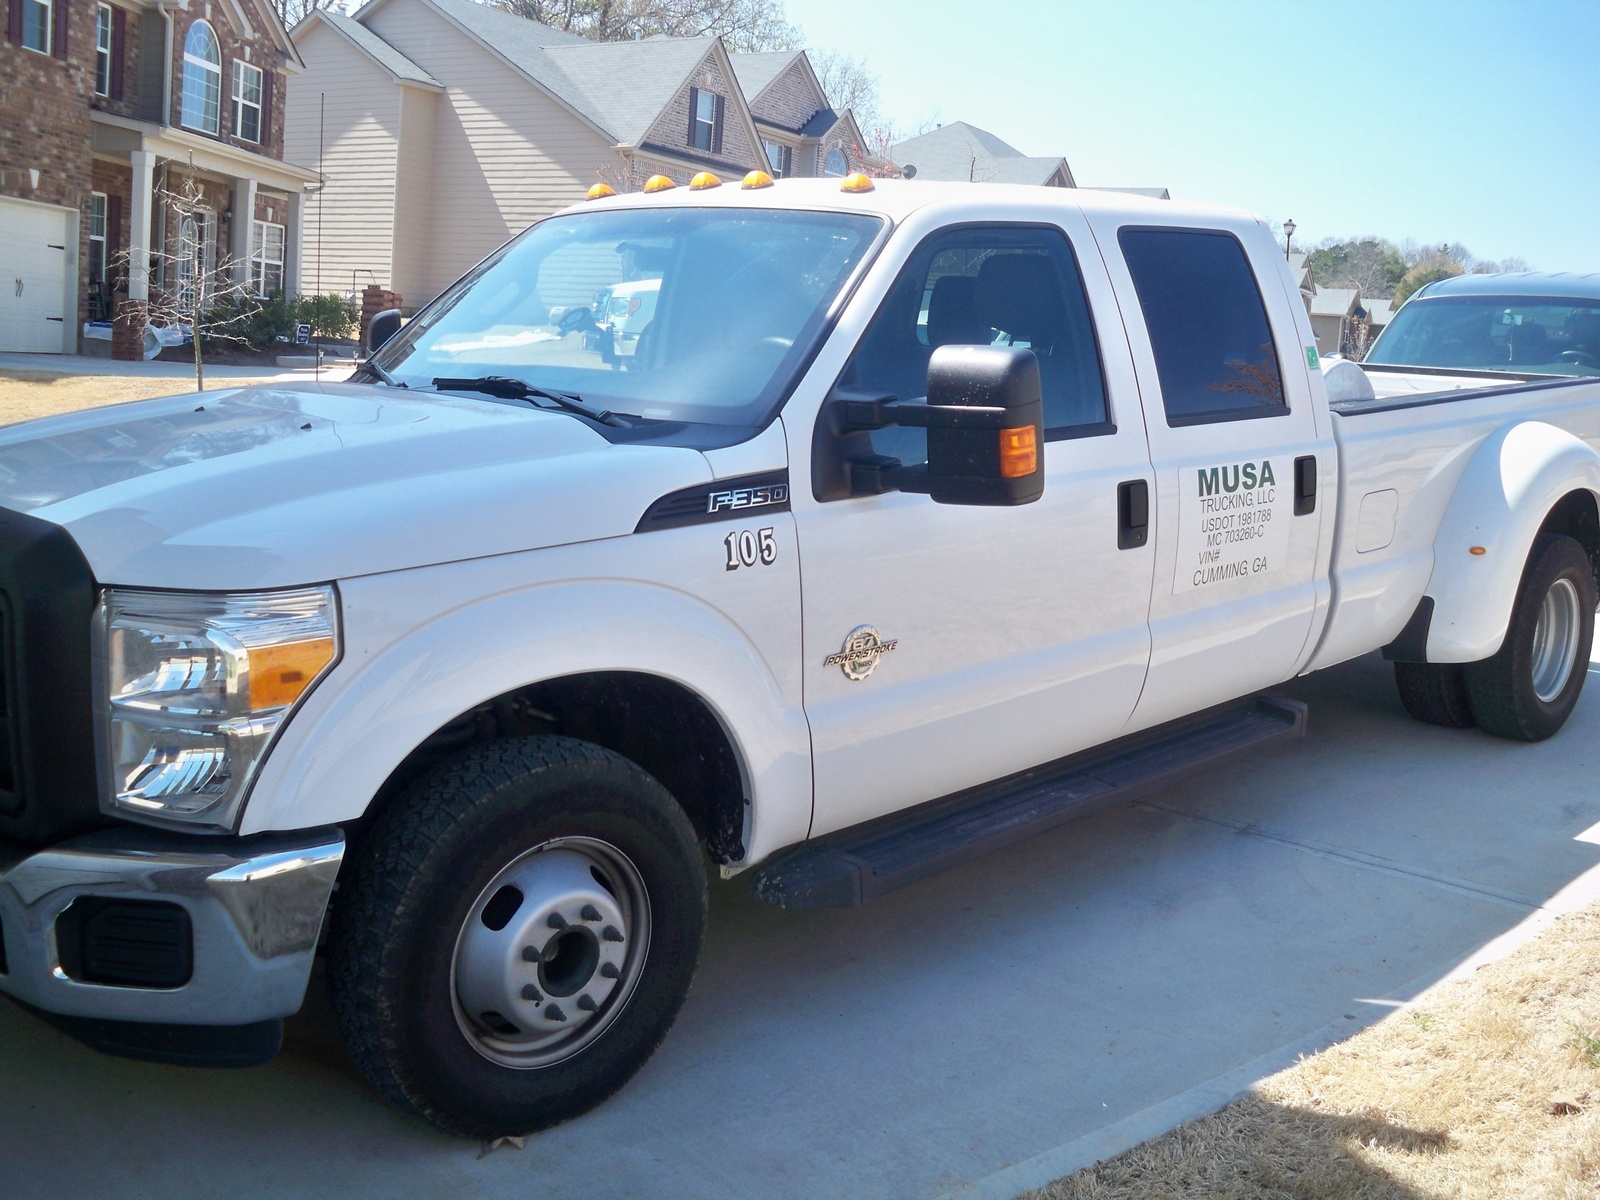 2008 f350 trailer plug wiring diagram neck throat anatomy ford f 350 super duty questions need to locate the fuse that controls my running lights on diesel